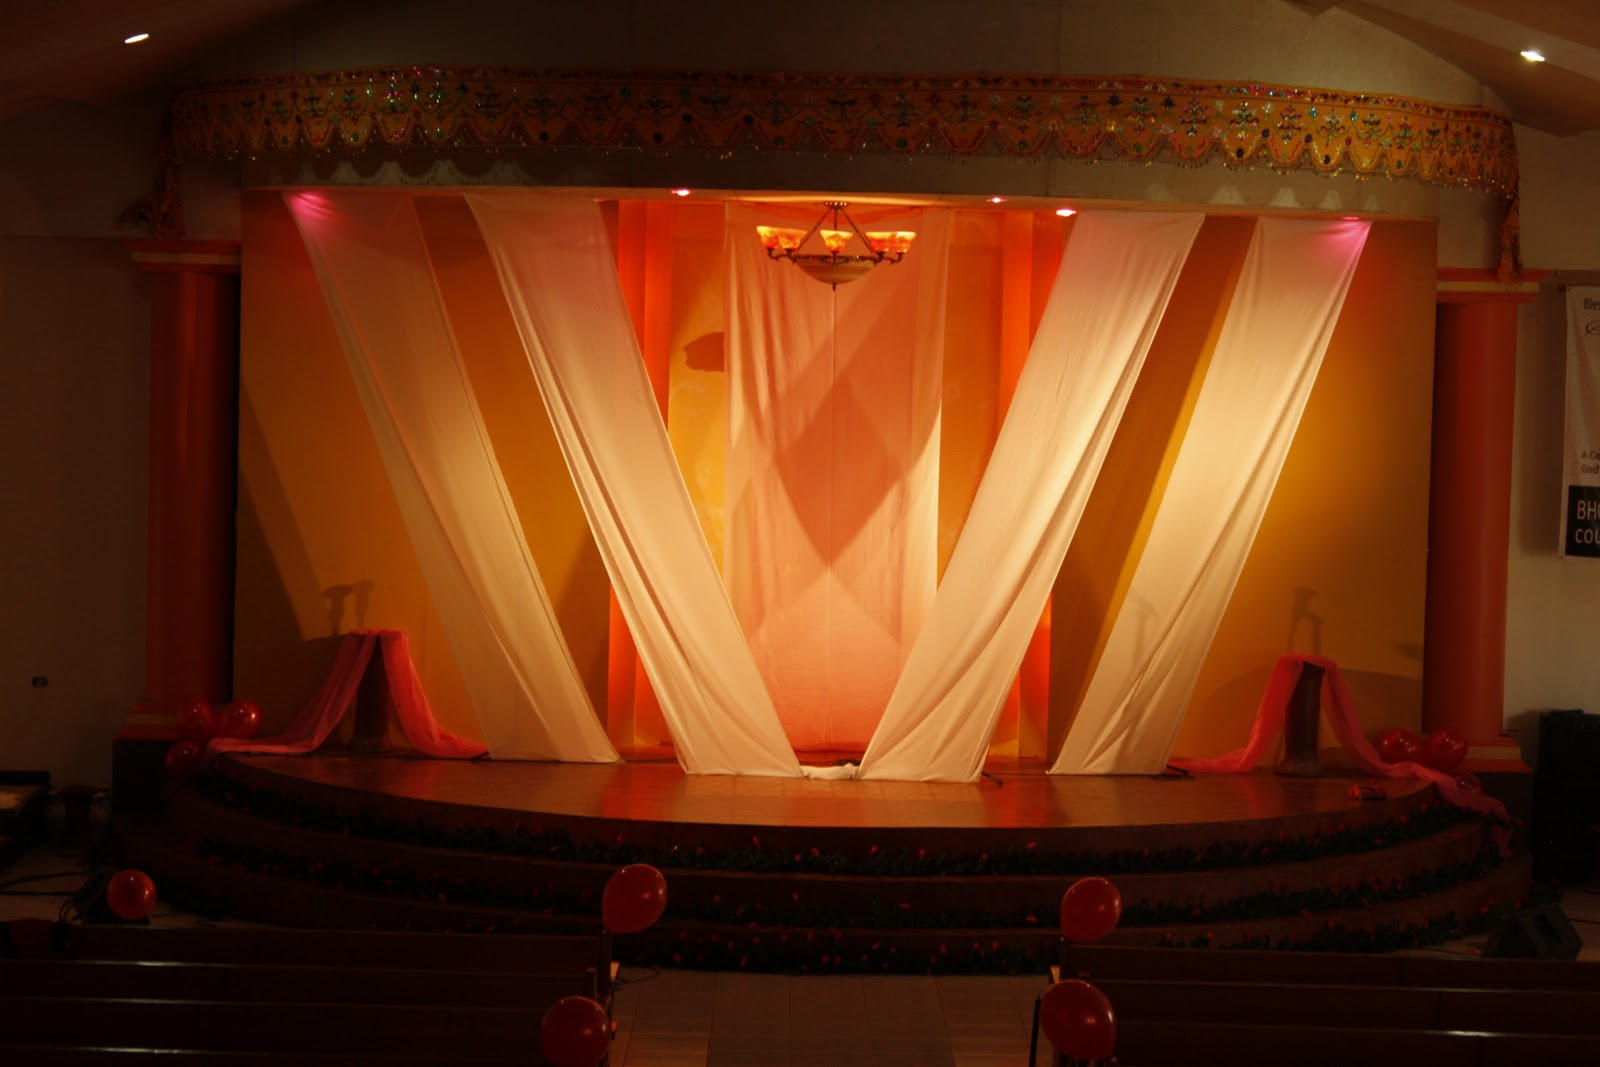 1000 images about multi stage inspiration on pinterest stage design church stage design and set design - Concert Stage Design Ideas